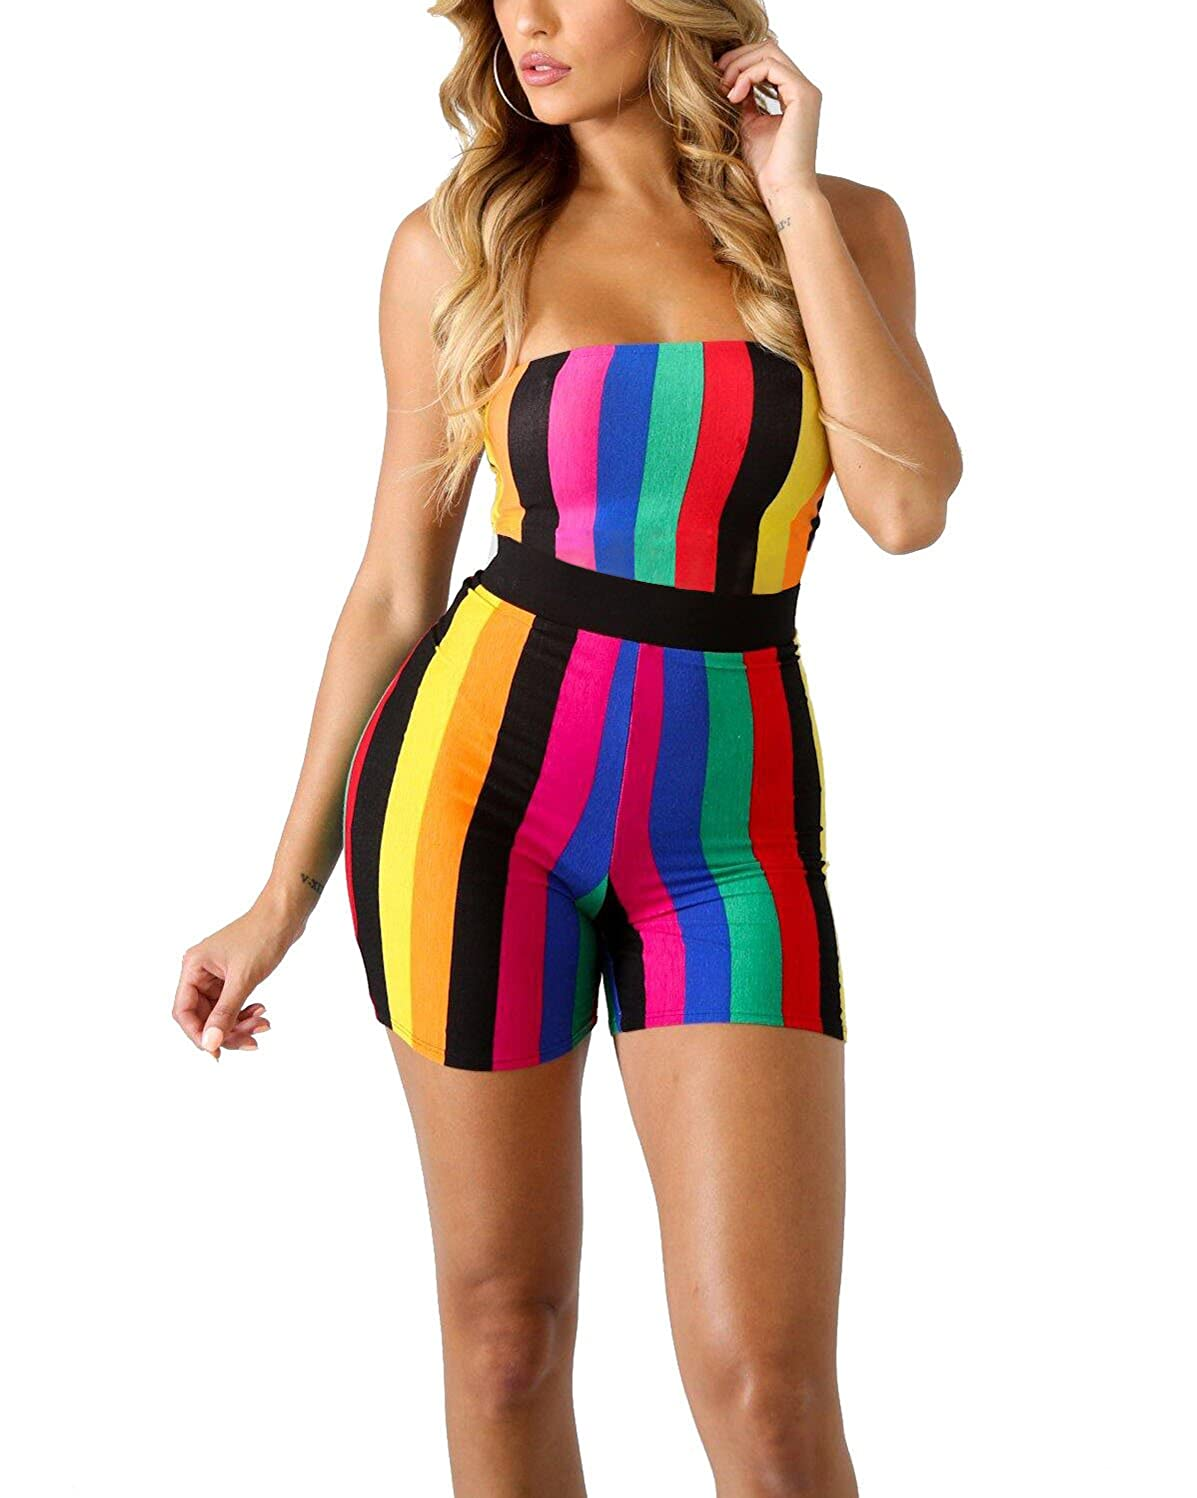 latest discount pretty nice fashionable and attractive package JiherBeauty Women's Sexy Strapless Striped Jumpsuits Rainbow Colorful  Bodycon Sleeveless Shorts Backless Rompers